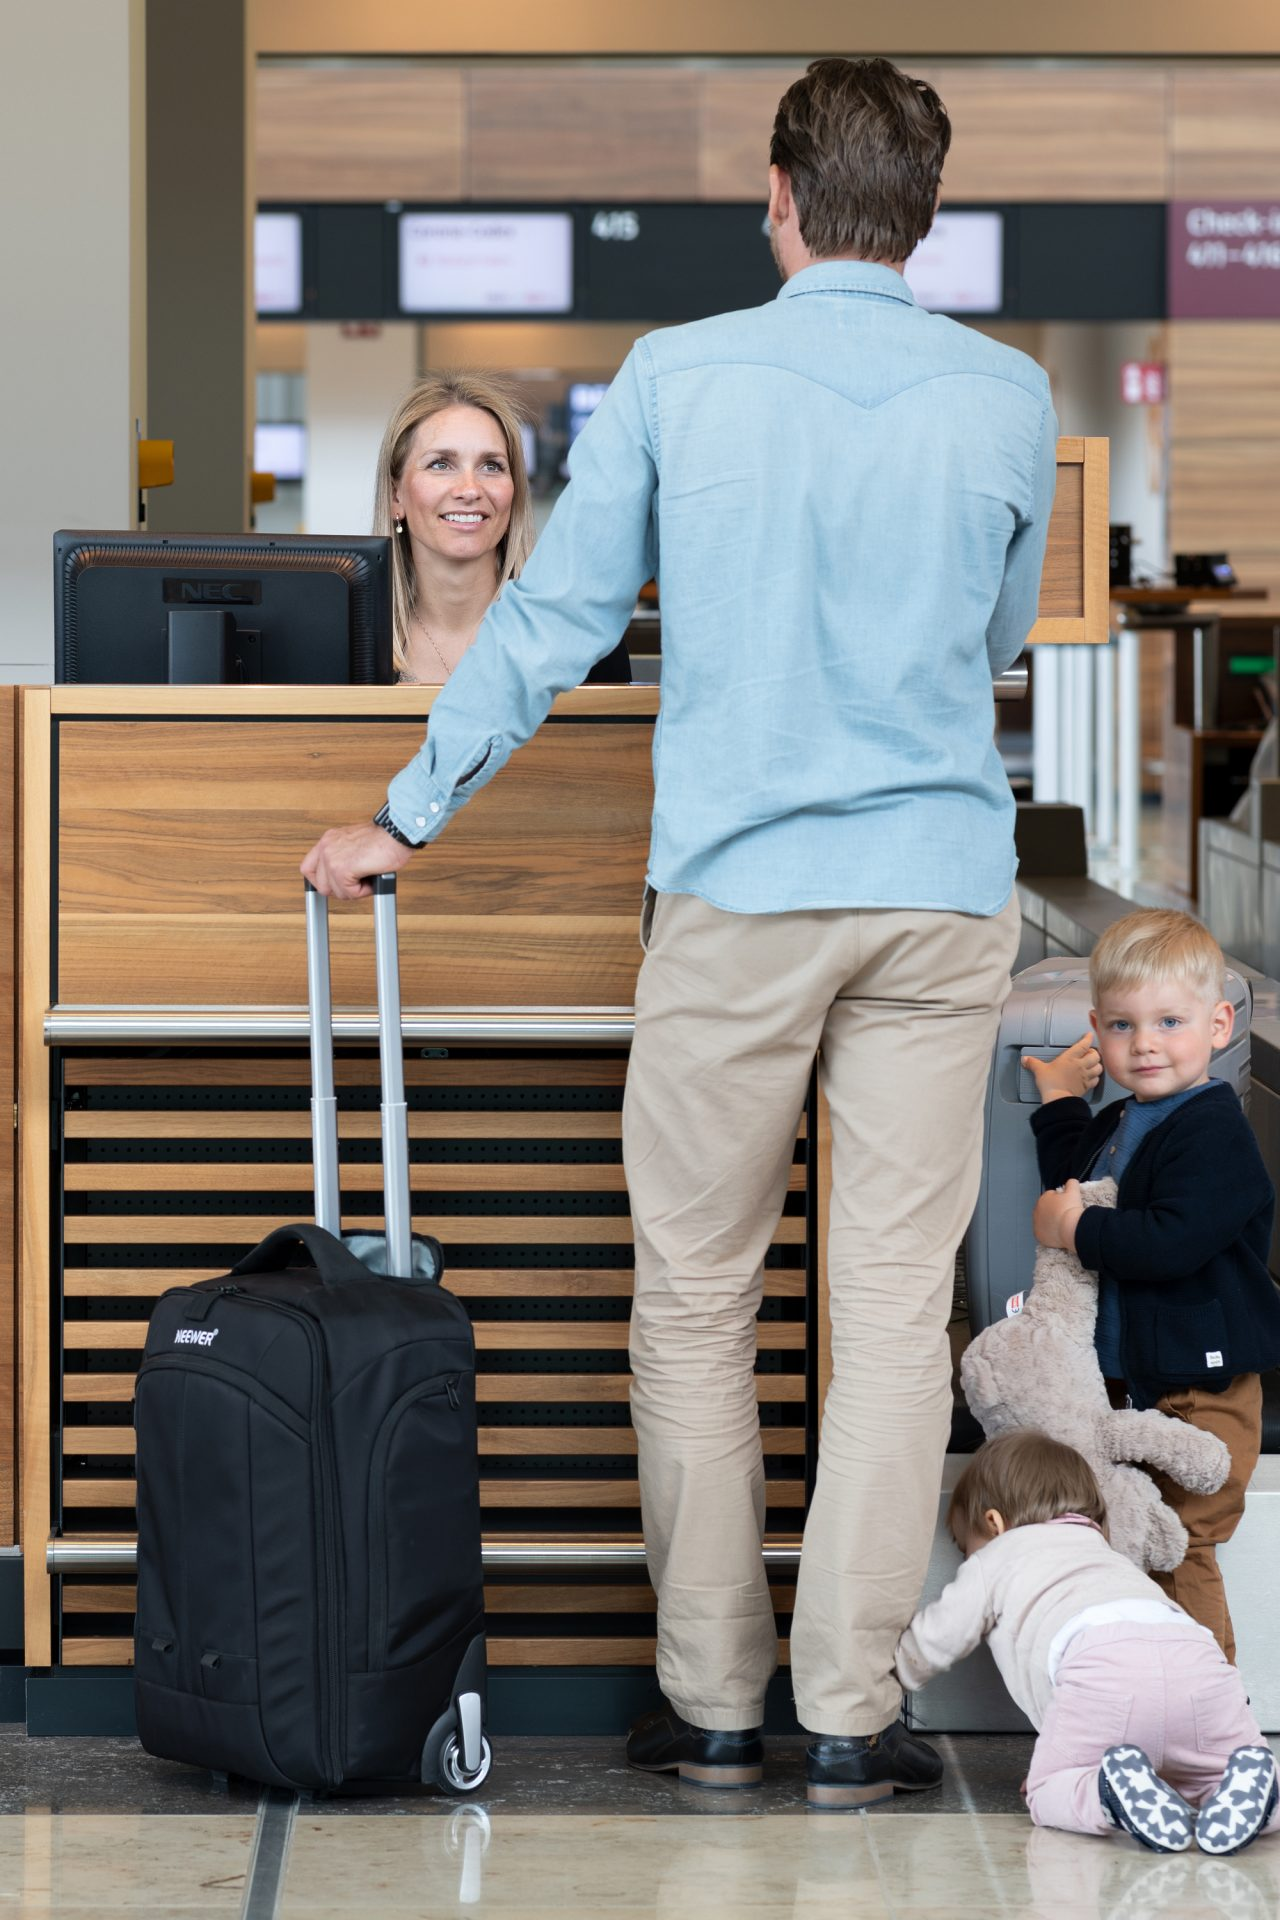 Kinder am Check-in Schalter